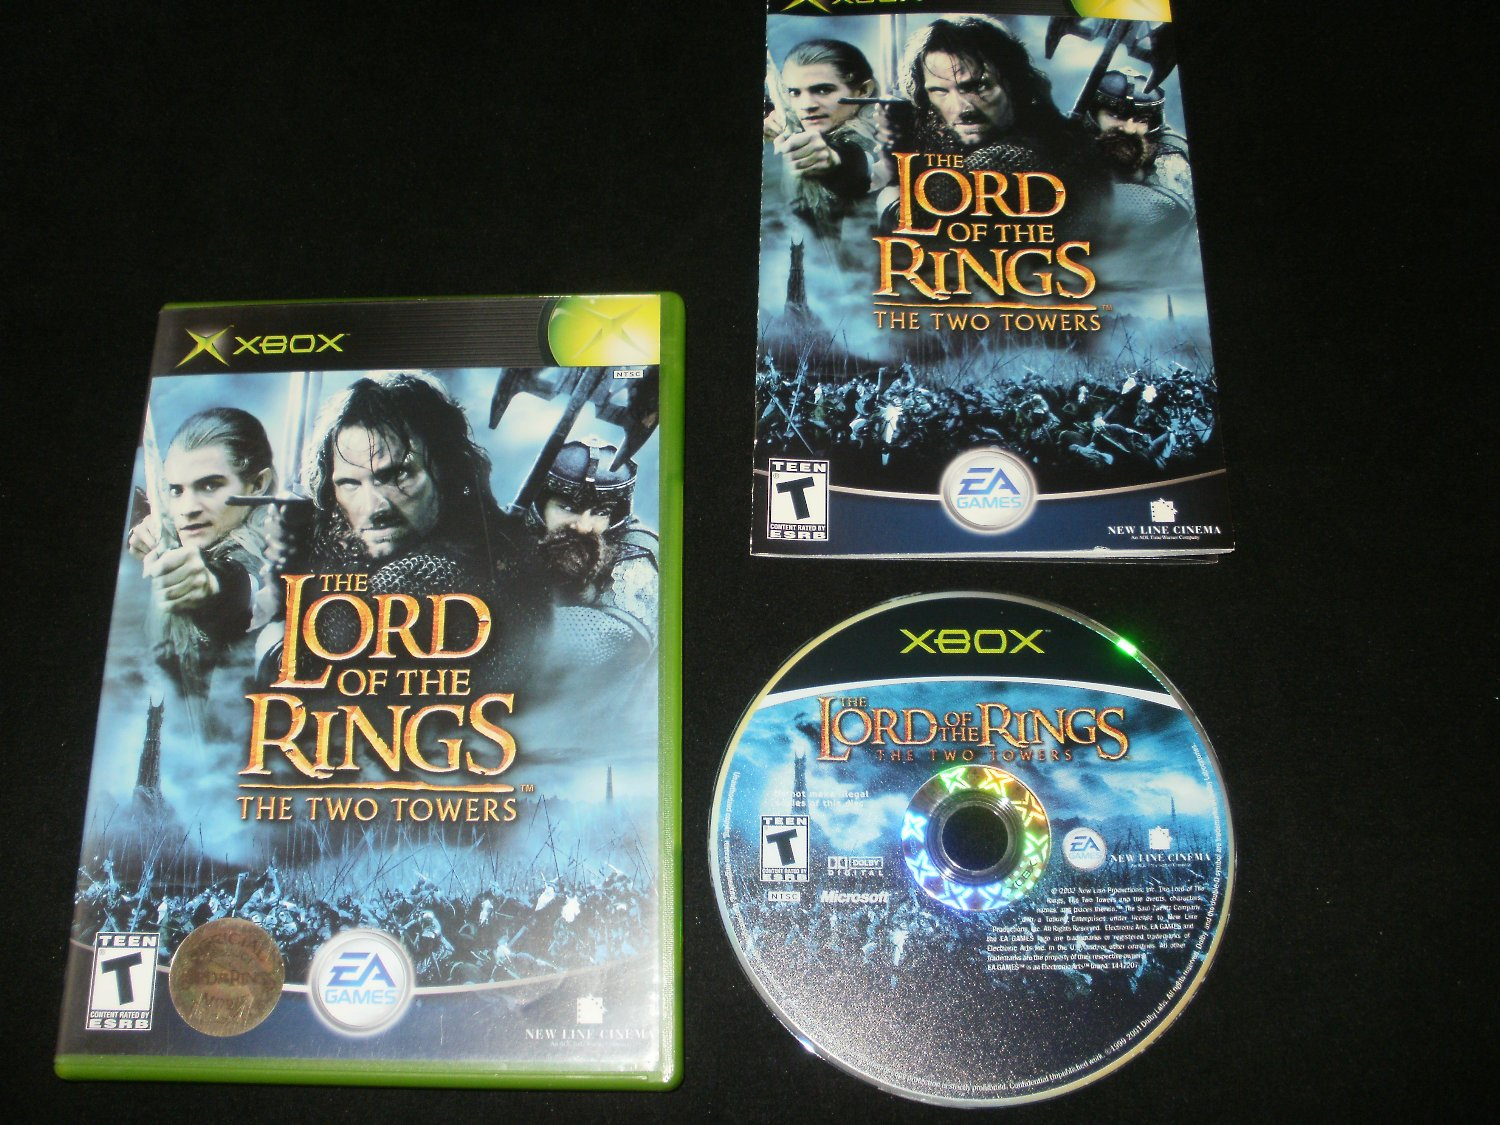 Lord of the Rings The Two Towers - Xbox - Complete CIB - Original 2003 Release